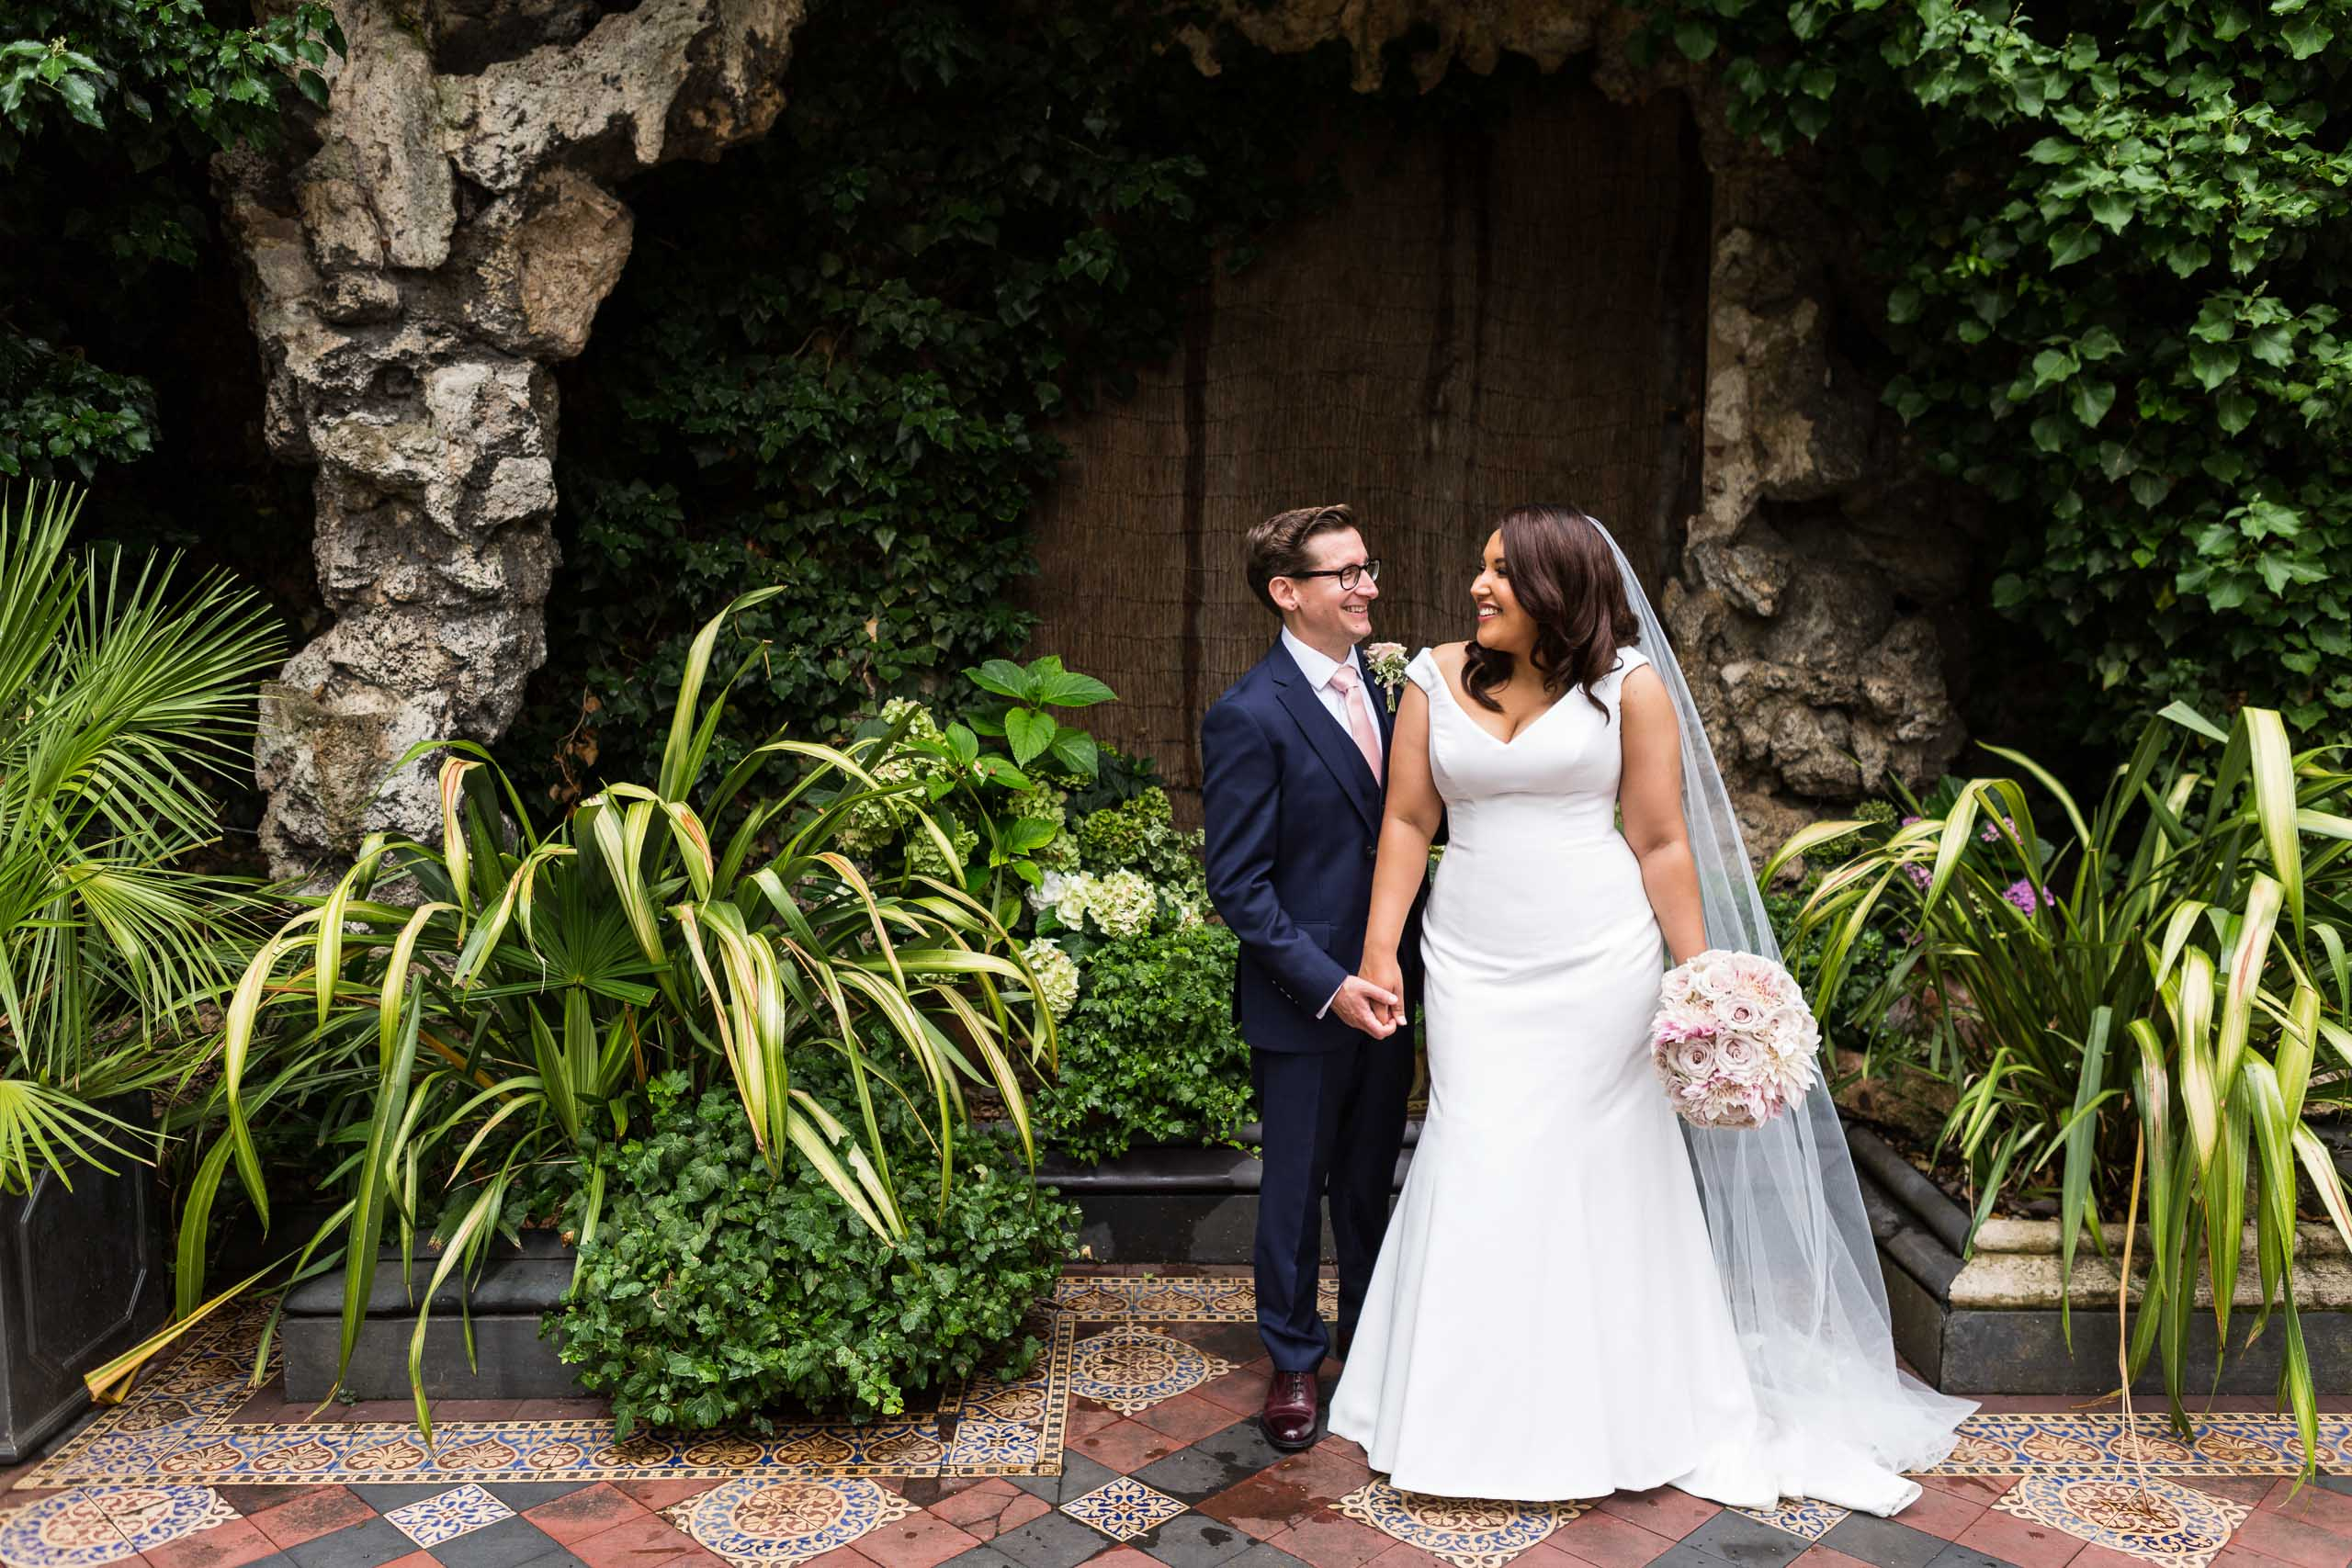 A newlywed couple smile at each other in a garden on their wedding day